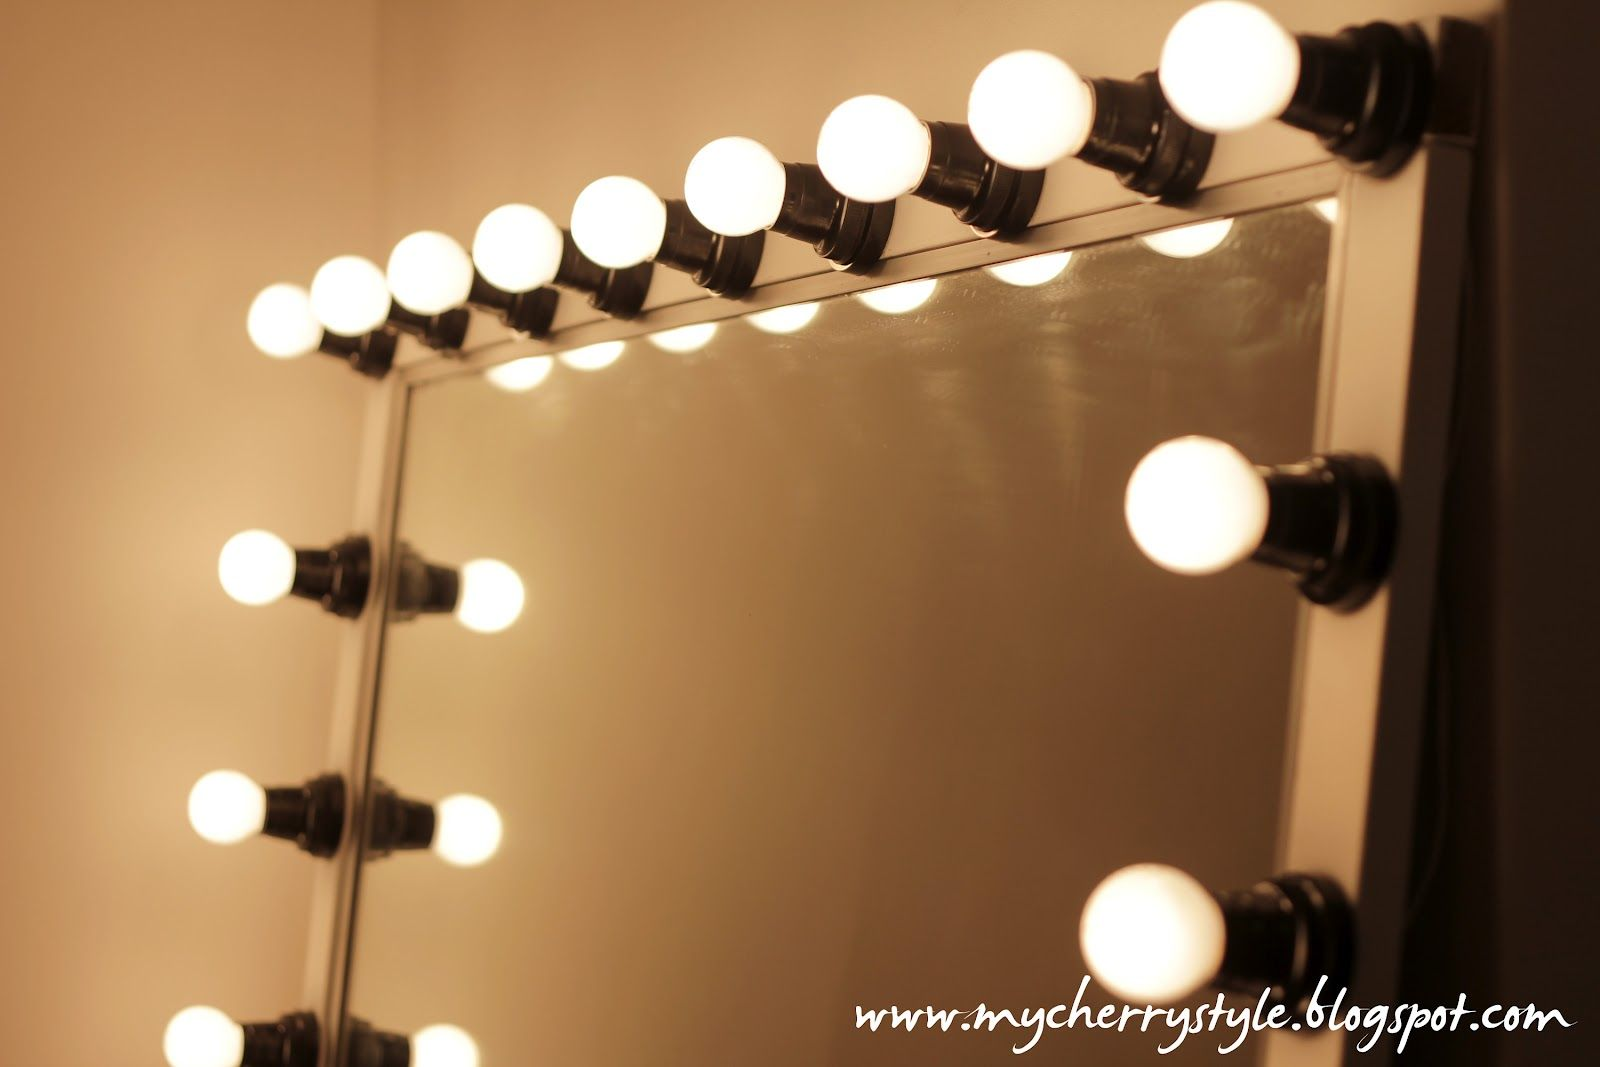 Diy hollywood style mirror with lights tutorial from scratch for diy hollywood style mirror with lights tutorial from scratch for real mozeypictures Image collections